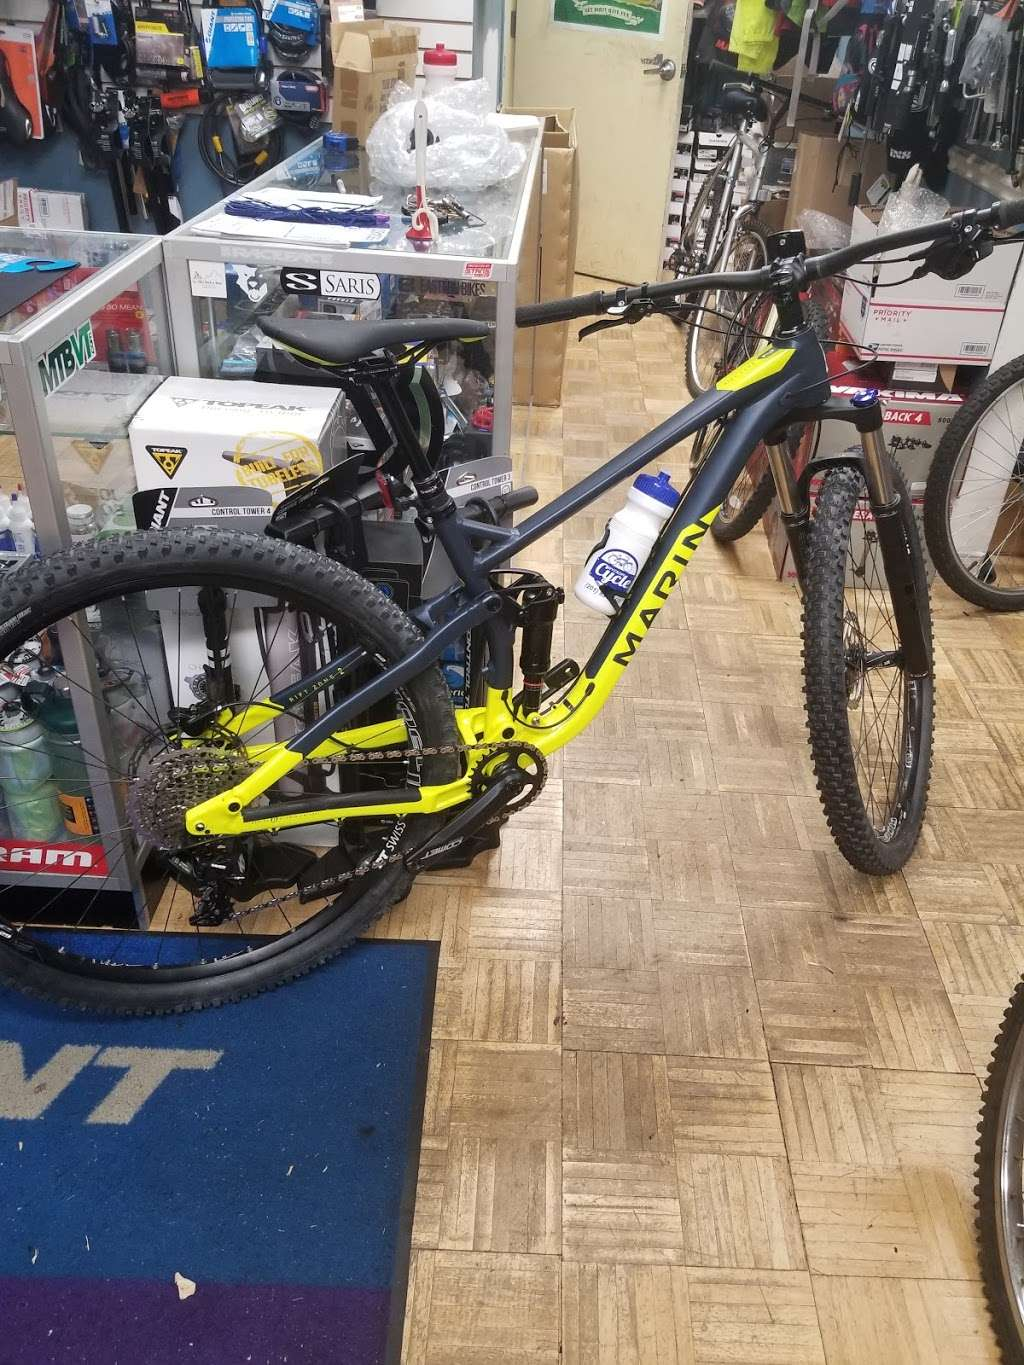 Wyckoff Cycle llc - bicycle store  | Photo 5 of 10 | Address: 396 Franklin Ave, Wyckoff, NJ 07481, USA | Phone: (201) 891-5500